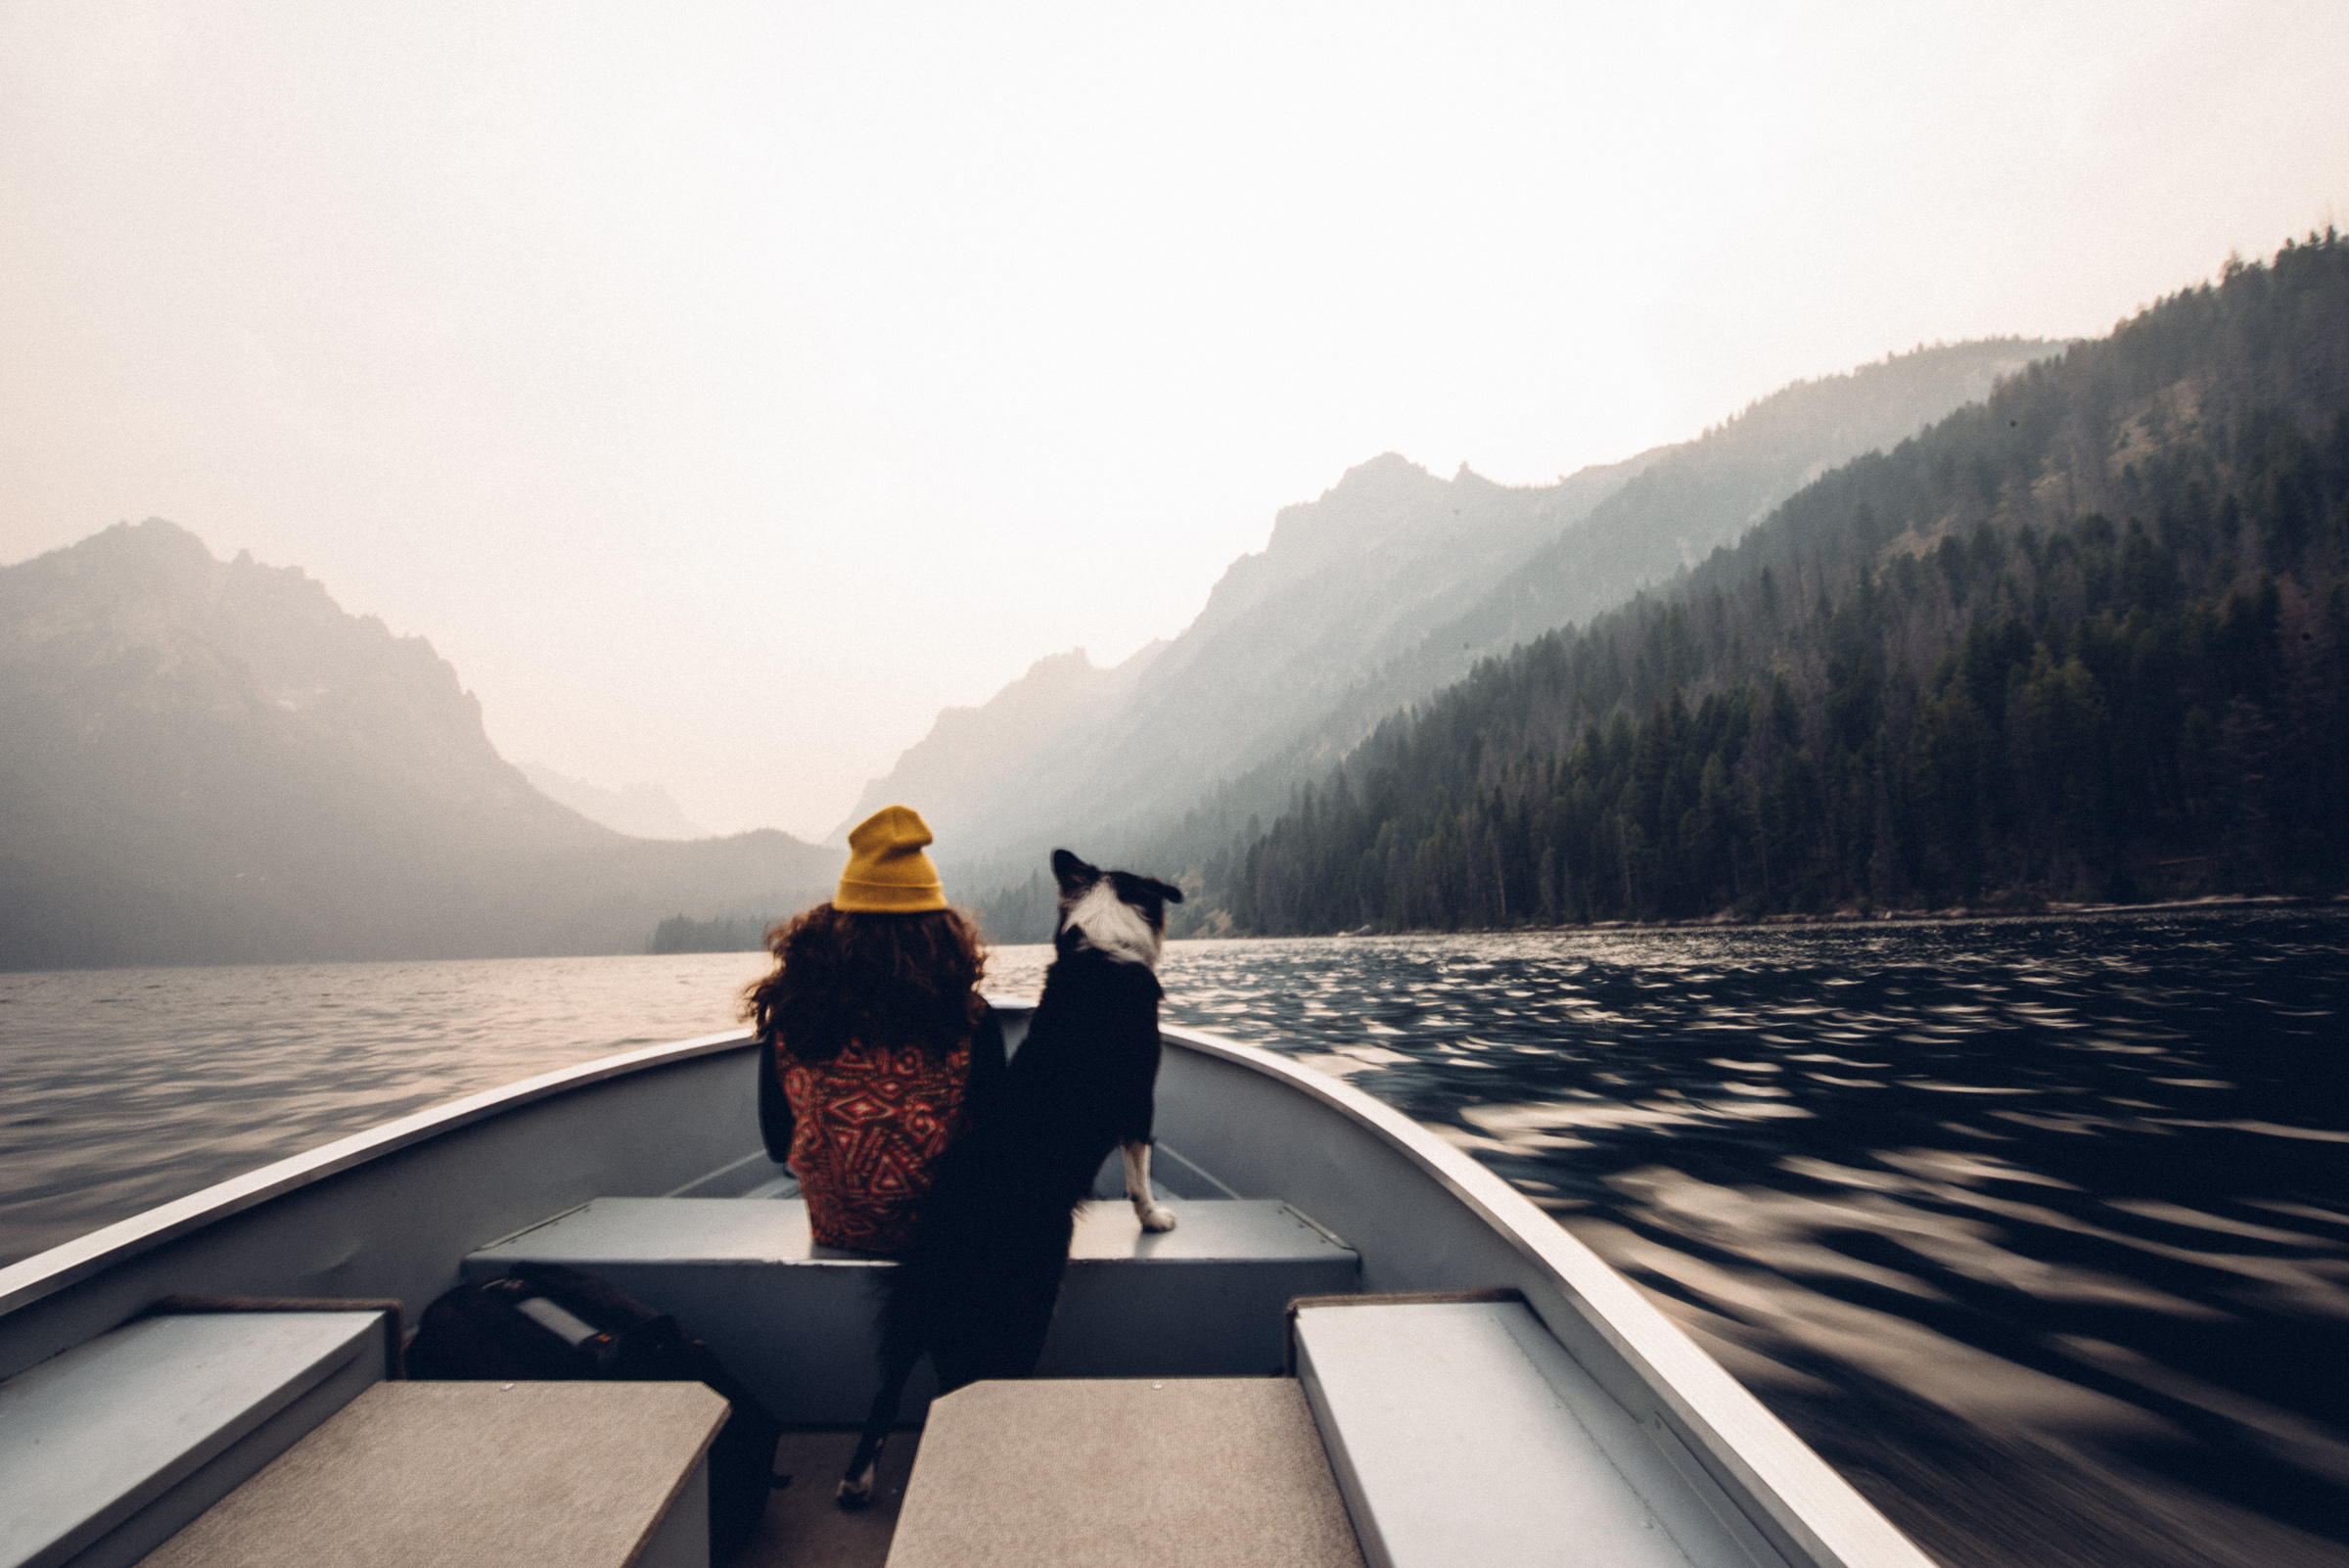 Rico and me cruising on Redfish Lake in Sawtooth National Recreation Area in Stanley, Idaho last September.